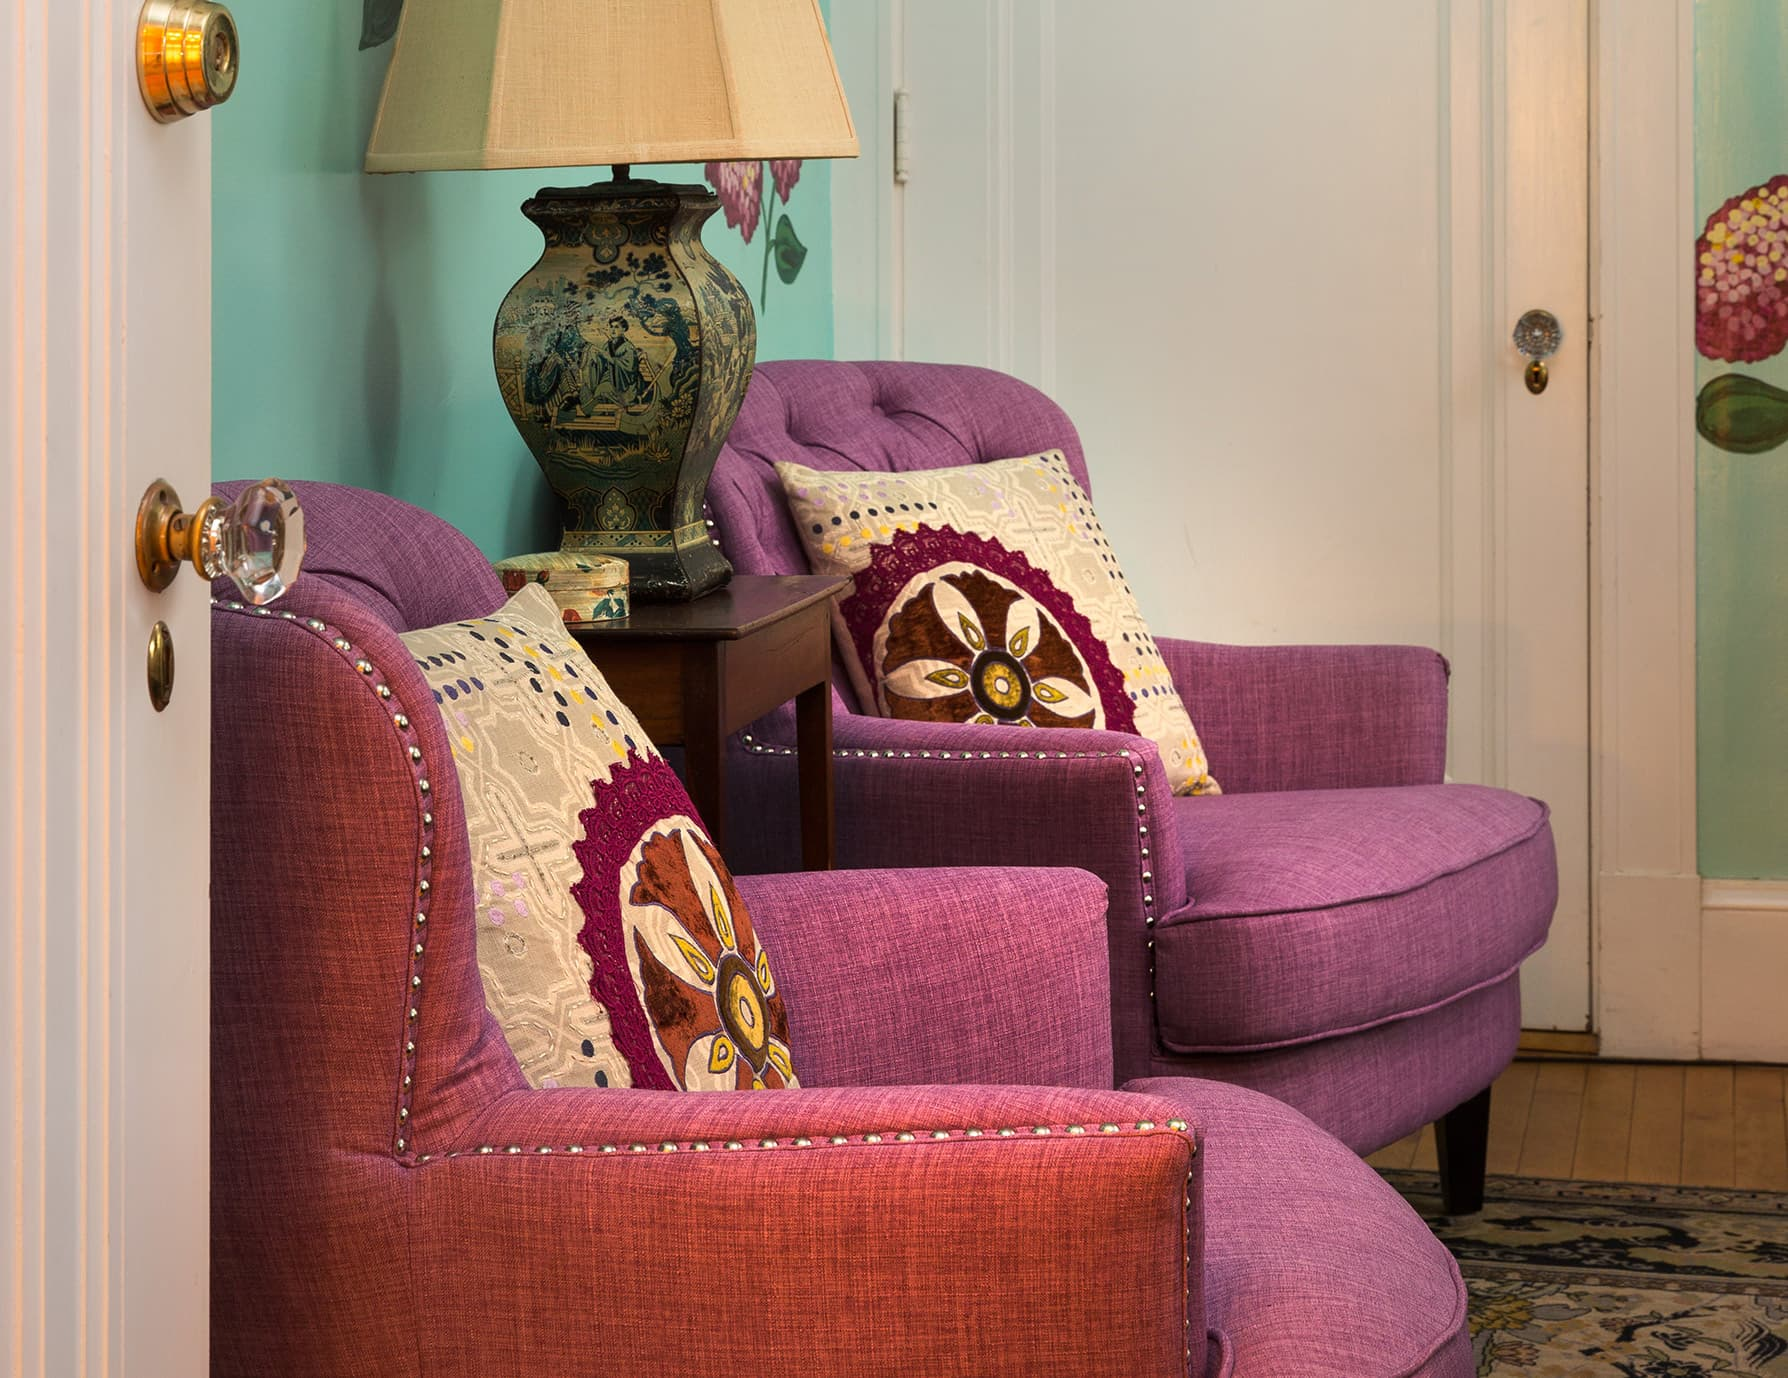 Hydrangea Room chairs at our Boutique Hotel in Portland, ME